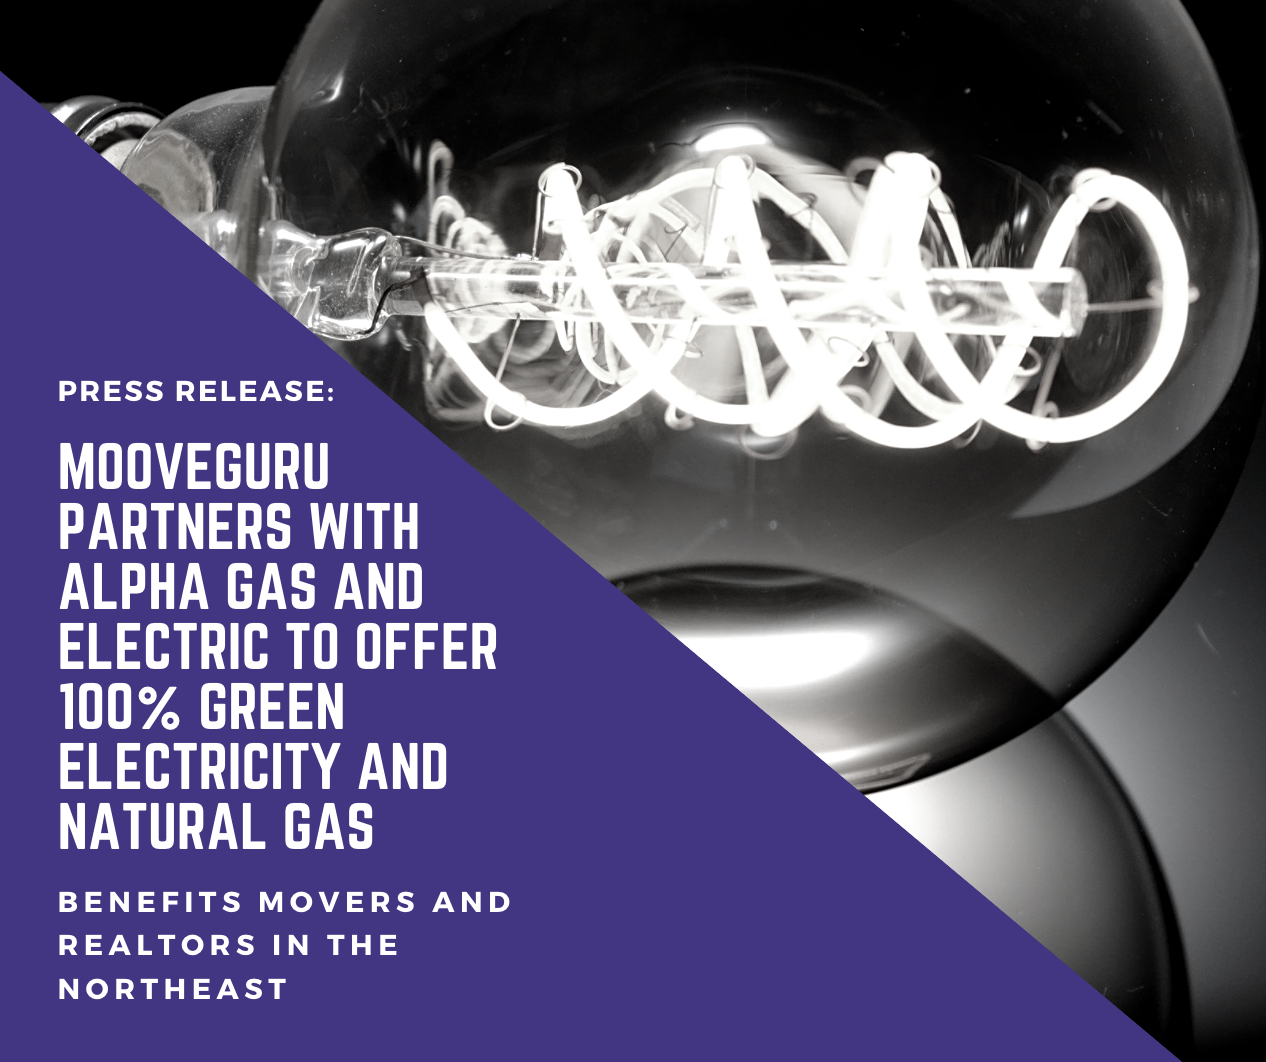 MooveGuru Partners with Alpha Gas and Electric to Offer 100% Green Electricity and Natural Gas Supply to Movers in the Central and Northeast U.S.